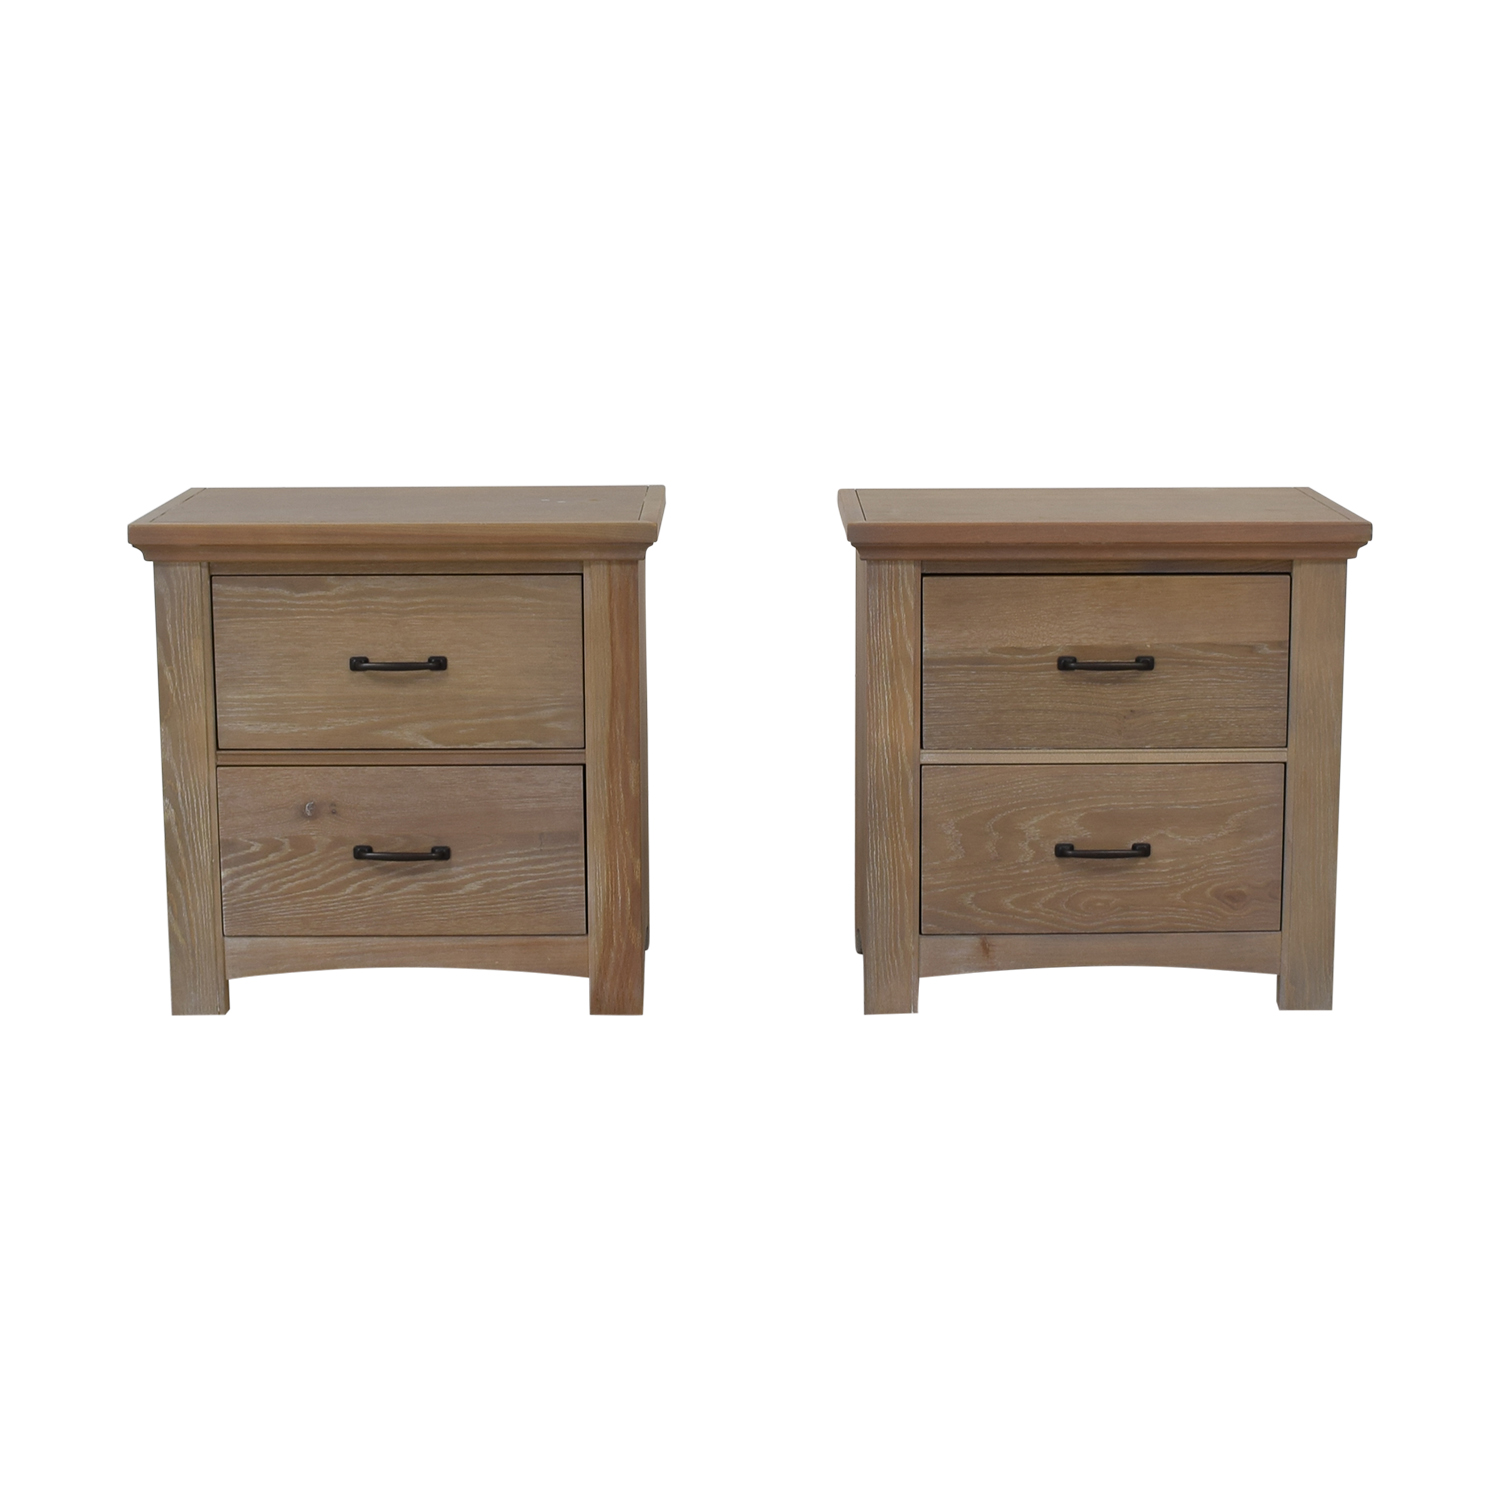 Vaughan-Bassett Vaughan-Basset Transitions Two Drawer Nightstands nj